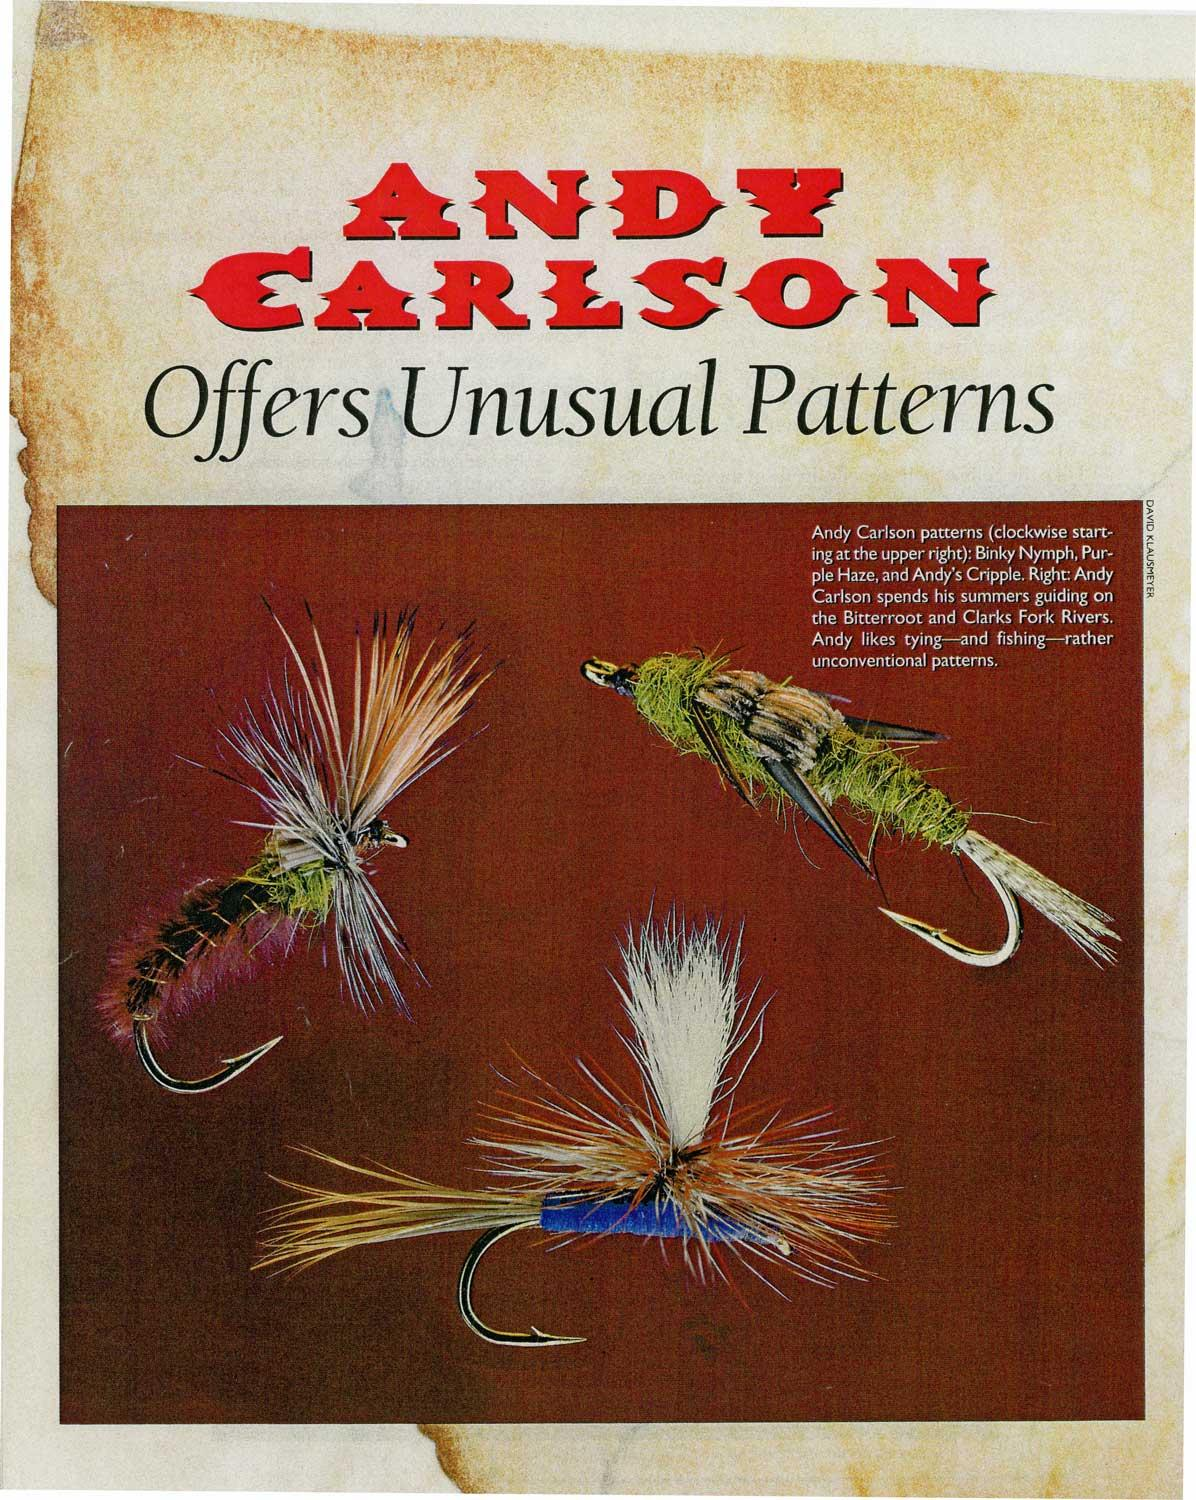 Fly Tying - Andy Carlson article in Fly Tyer Magazine - Purple Haze, Binky Nymph and Andy's Cripple